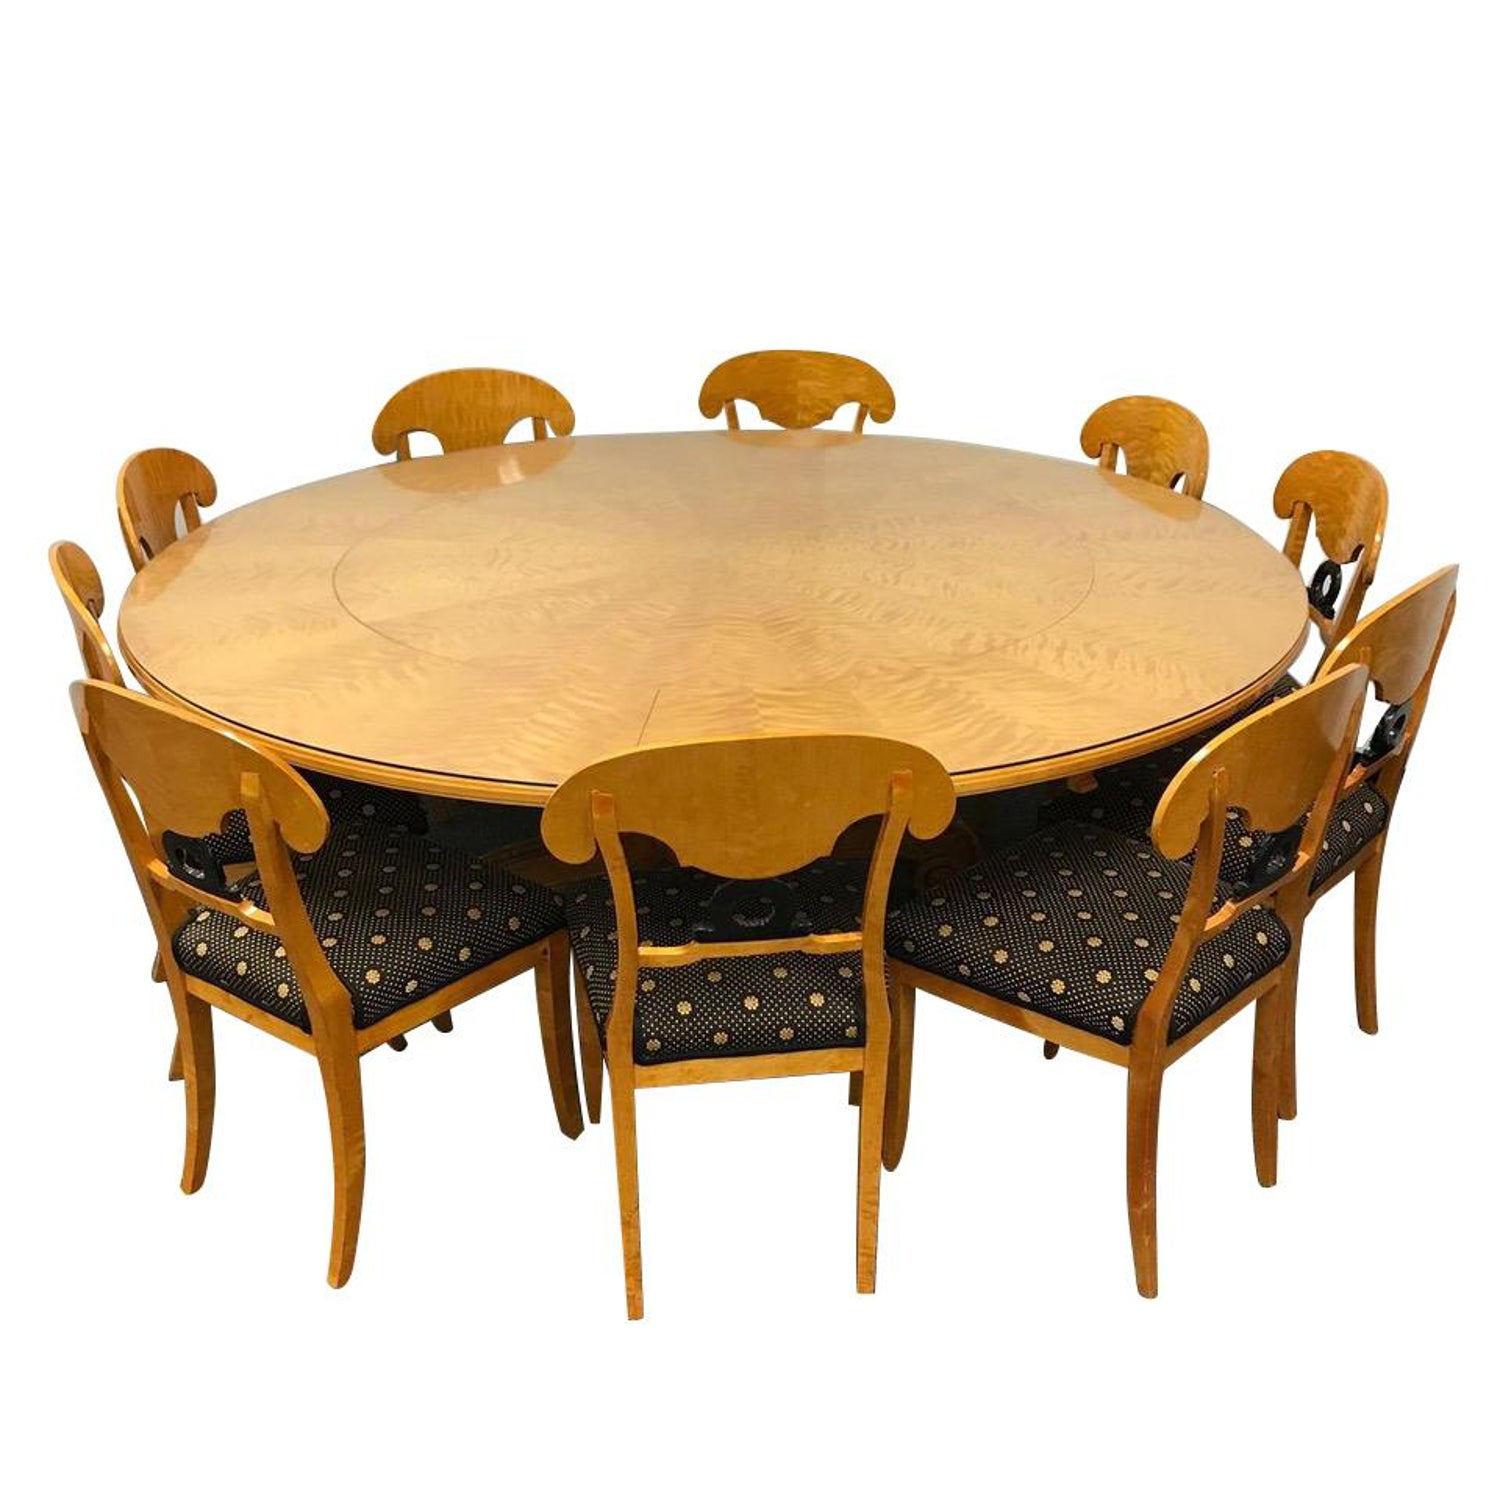 1800s Swedish Biedermeier Dining Suite 10 Chairs Extension 80 Round